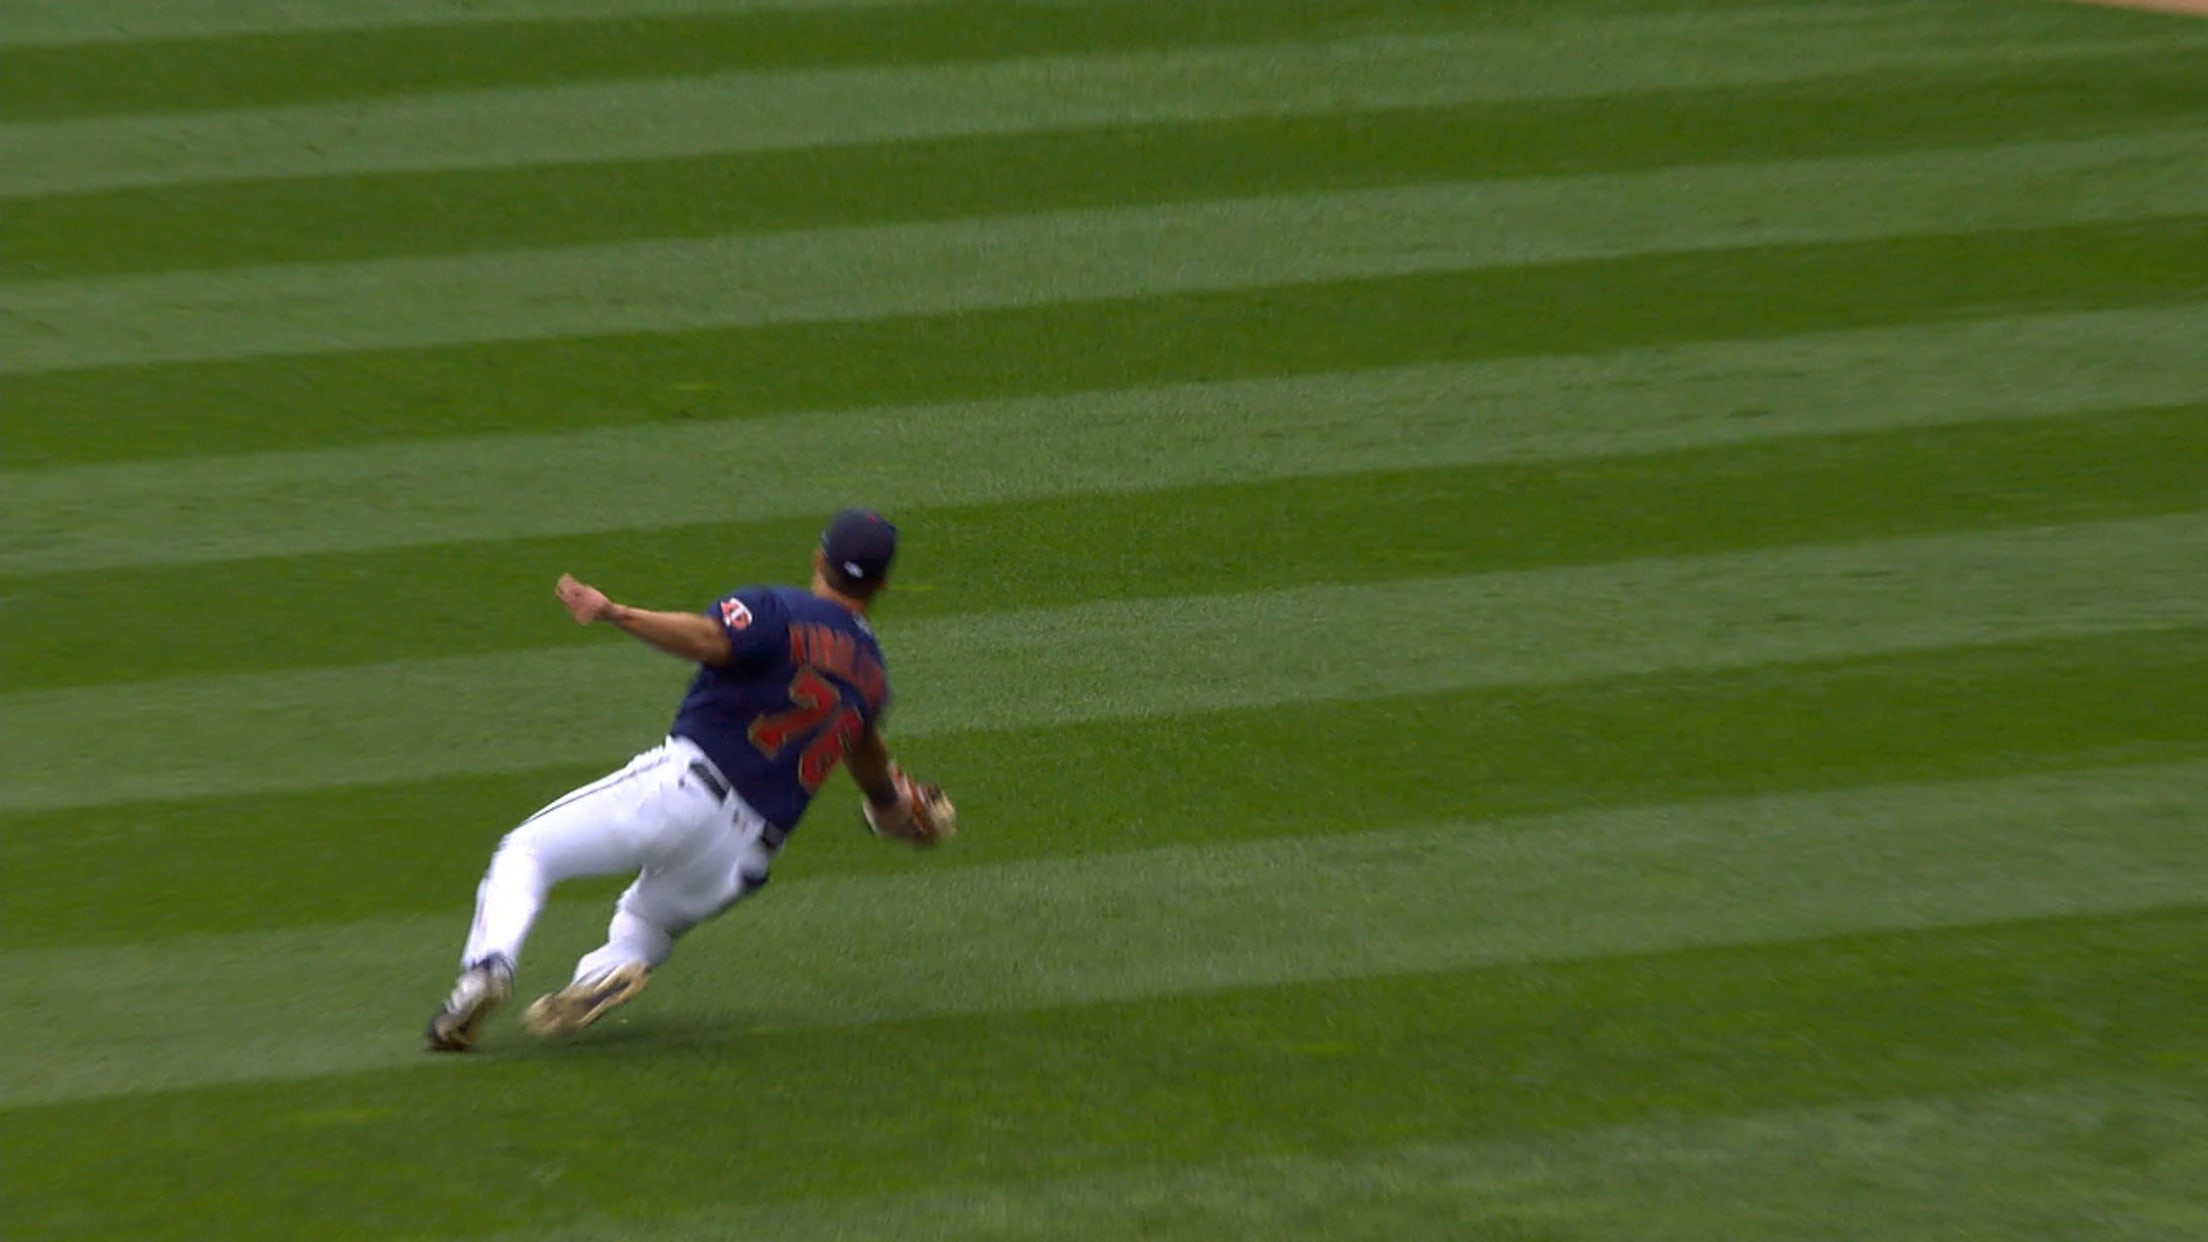 Alex Kirilloff's sliding catch